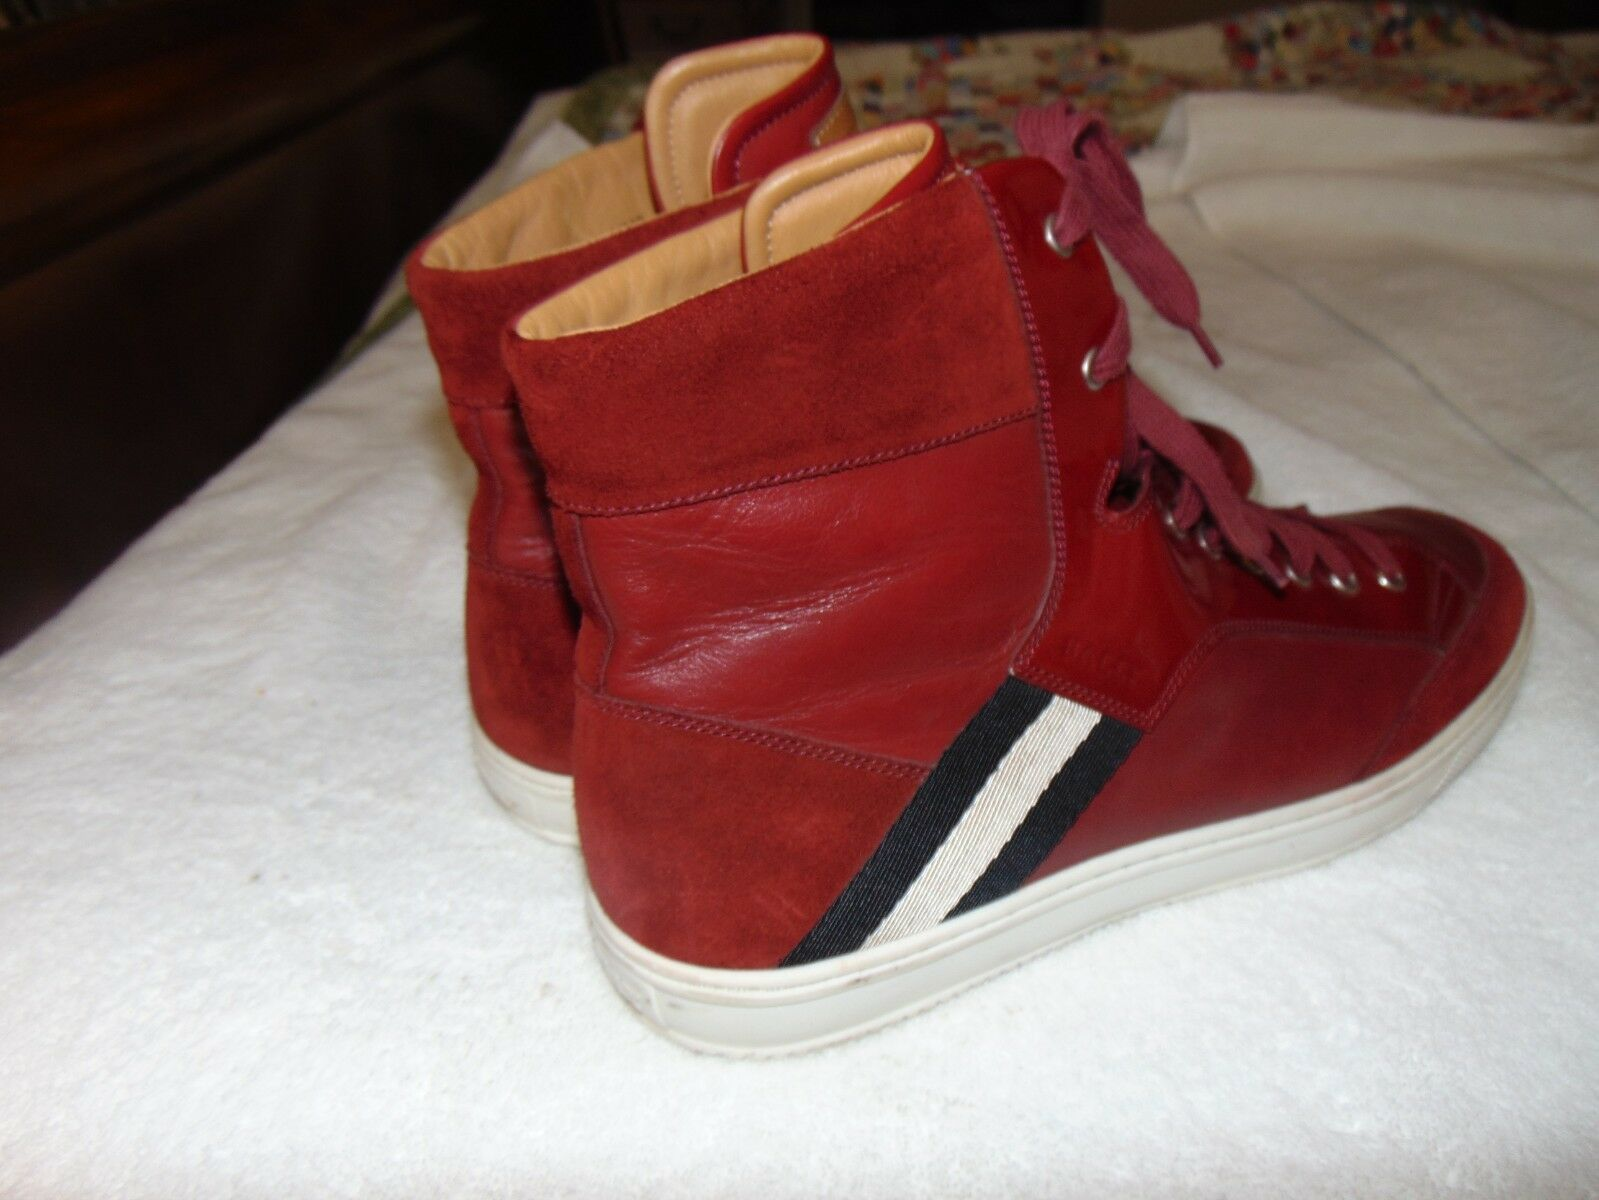 Classic 13 Bally Oldani ROT Mixed-Leder High-Top Sneaker 13 Classic D SOLD OUT 599 33db2e